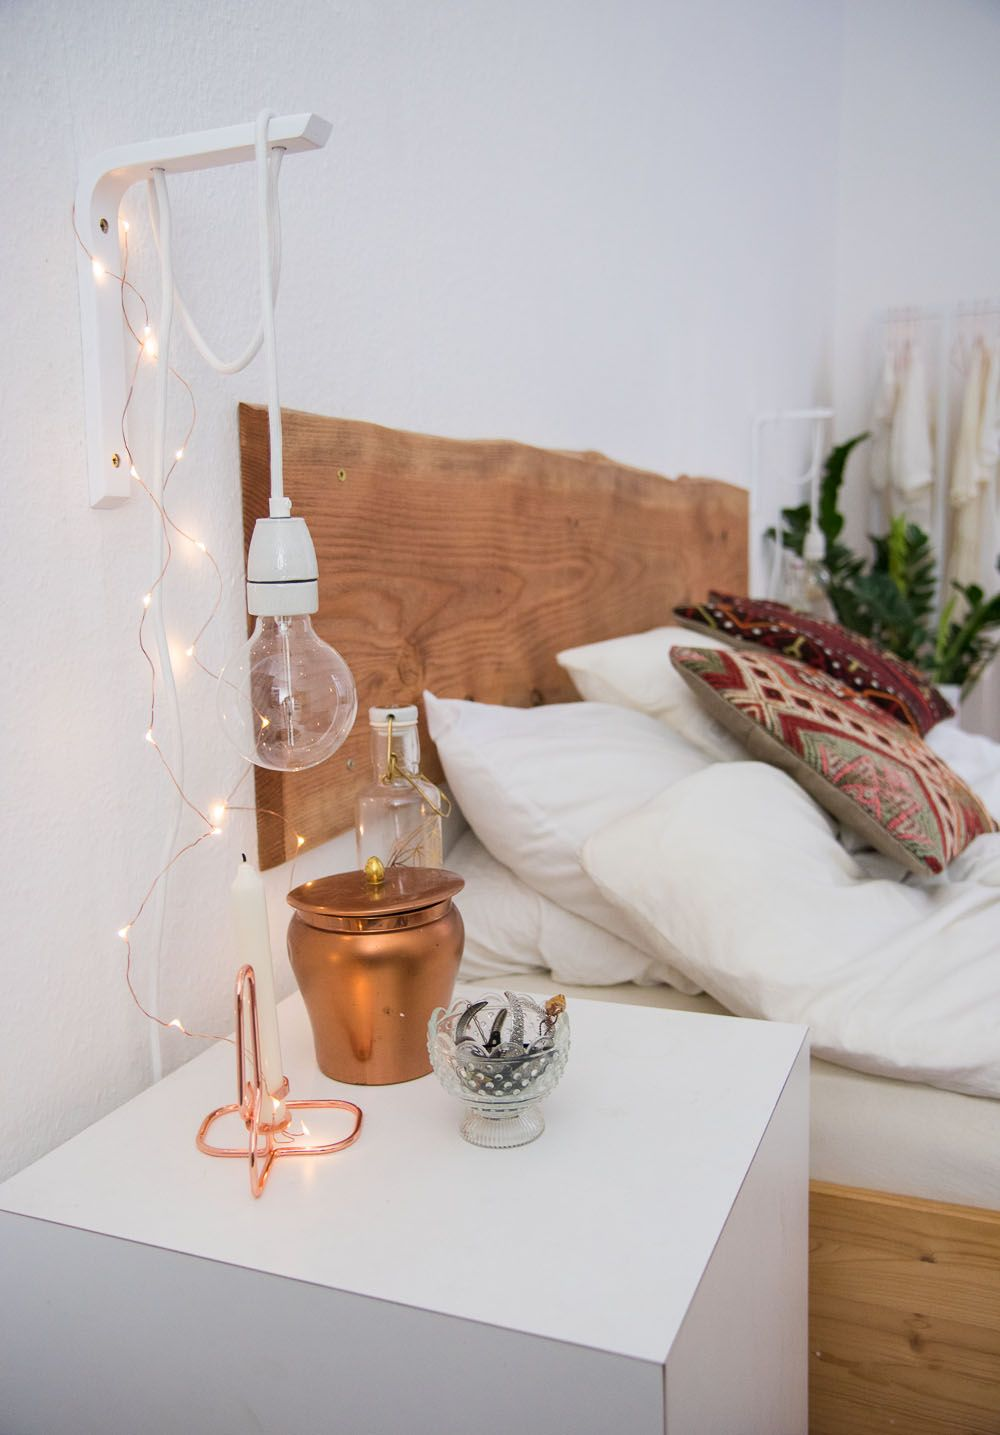 Bedside table ideas tumblr - I D Like To Use Interesting Branches Like Hooks As The Brackets On Each Side Of The Bed Branches Covered In Fairly Lights Pendant Hanging